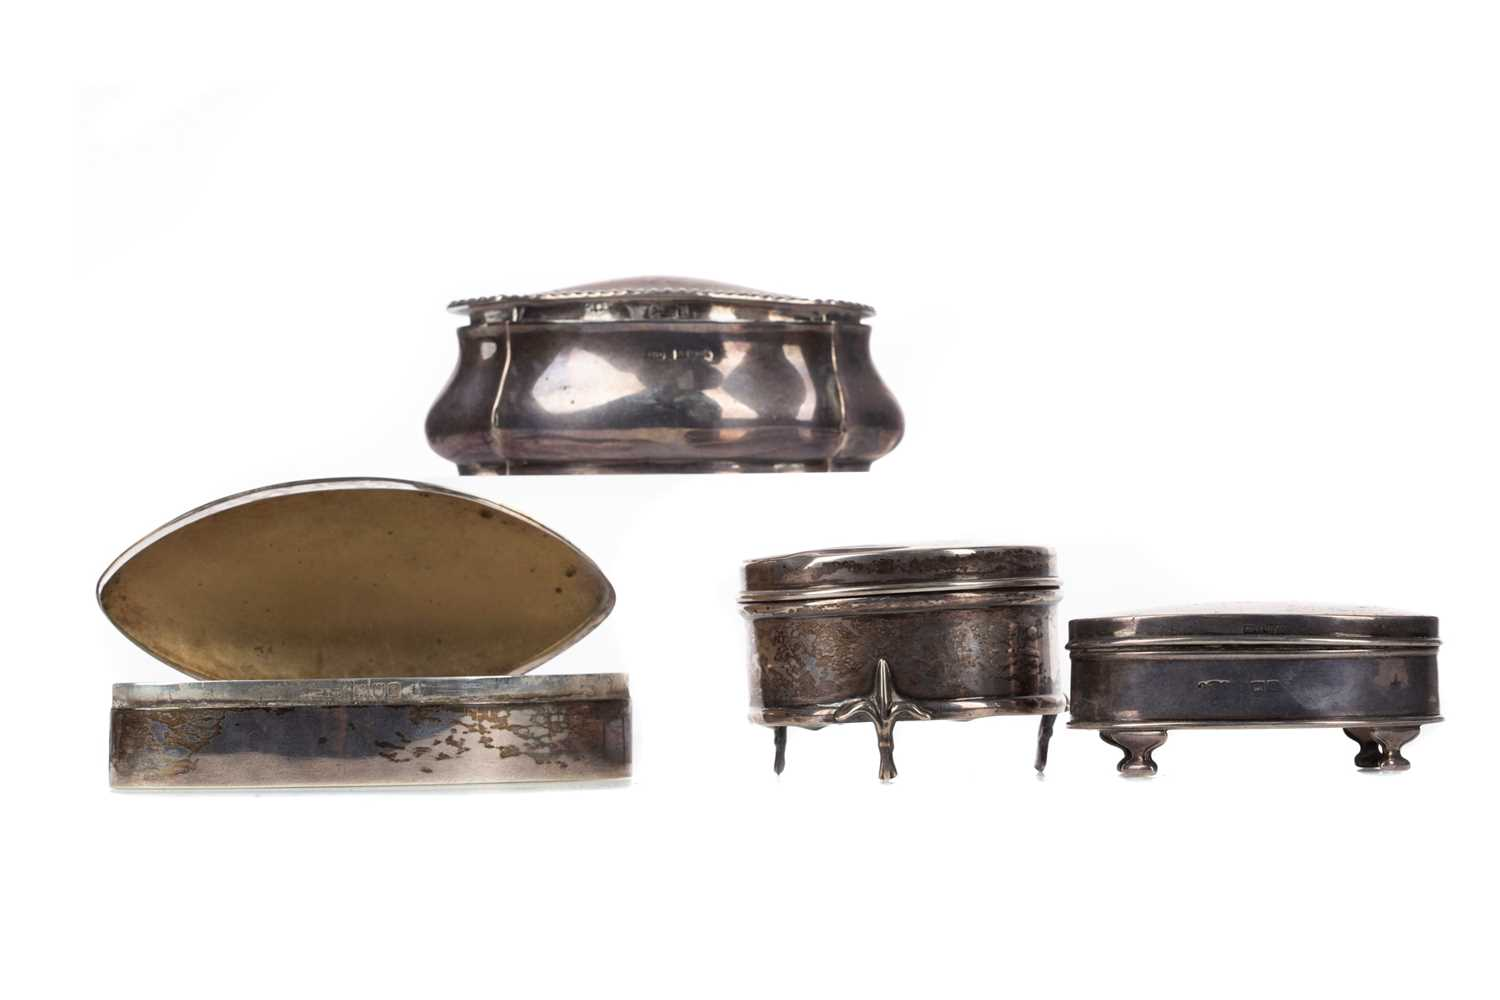 Lot 434 - AN EDWARDIAN SILVER TRINKET BOX AND ANOTHER